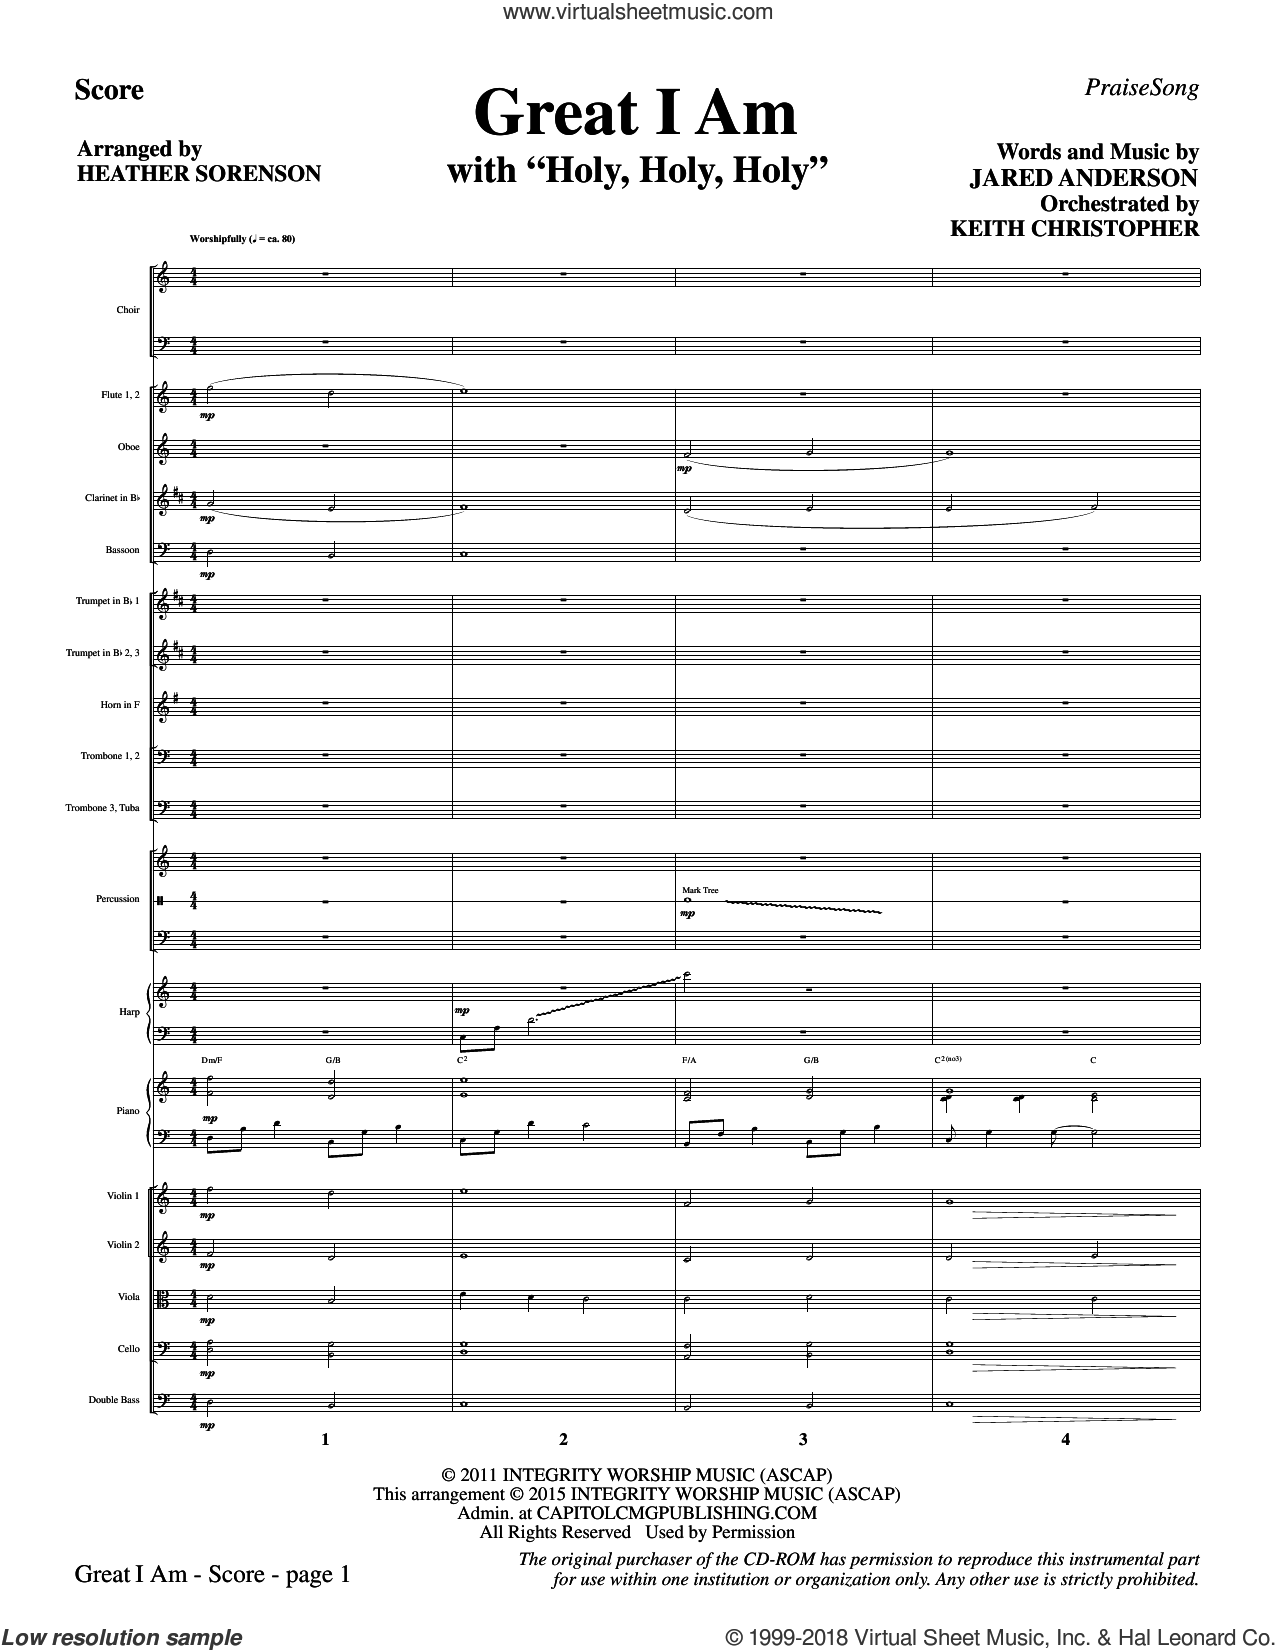 Great I Am (COMPLETE) sheet music for orchestra/band by Heather Sorenson and Jared Anderson, intermediate